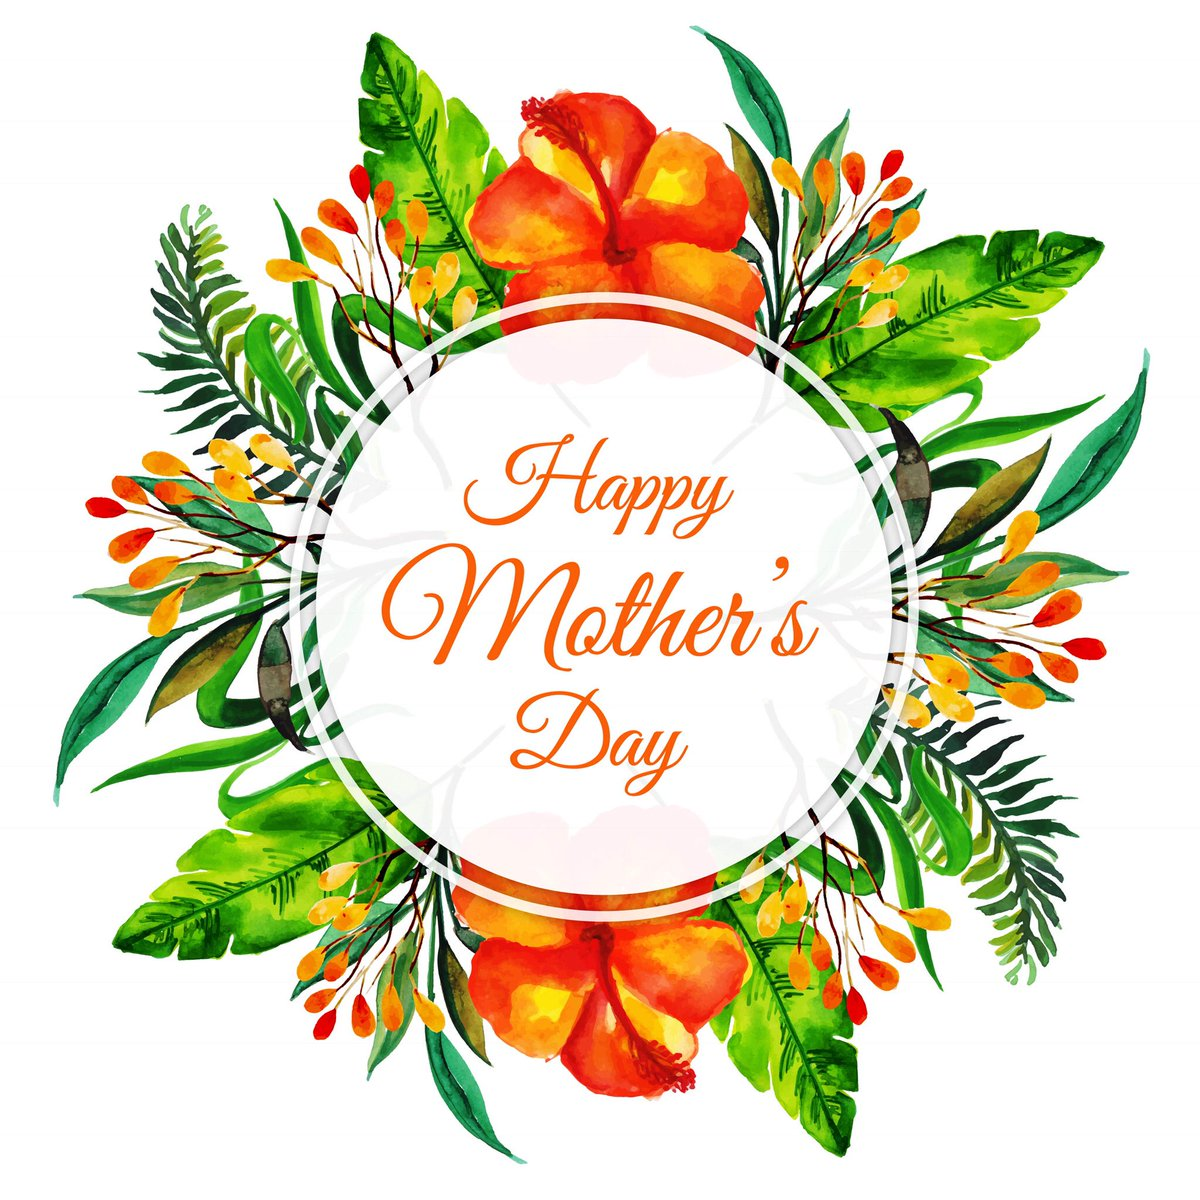 w connection fc on twitter happy mothers day to all our queens to our mothers wives girlfriends and administrators thank you for your continued and